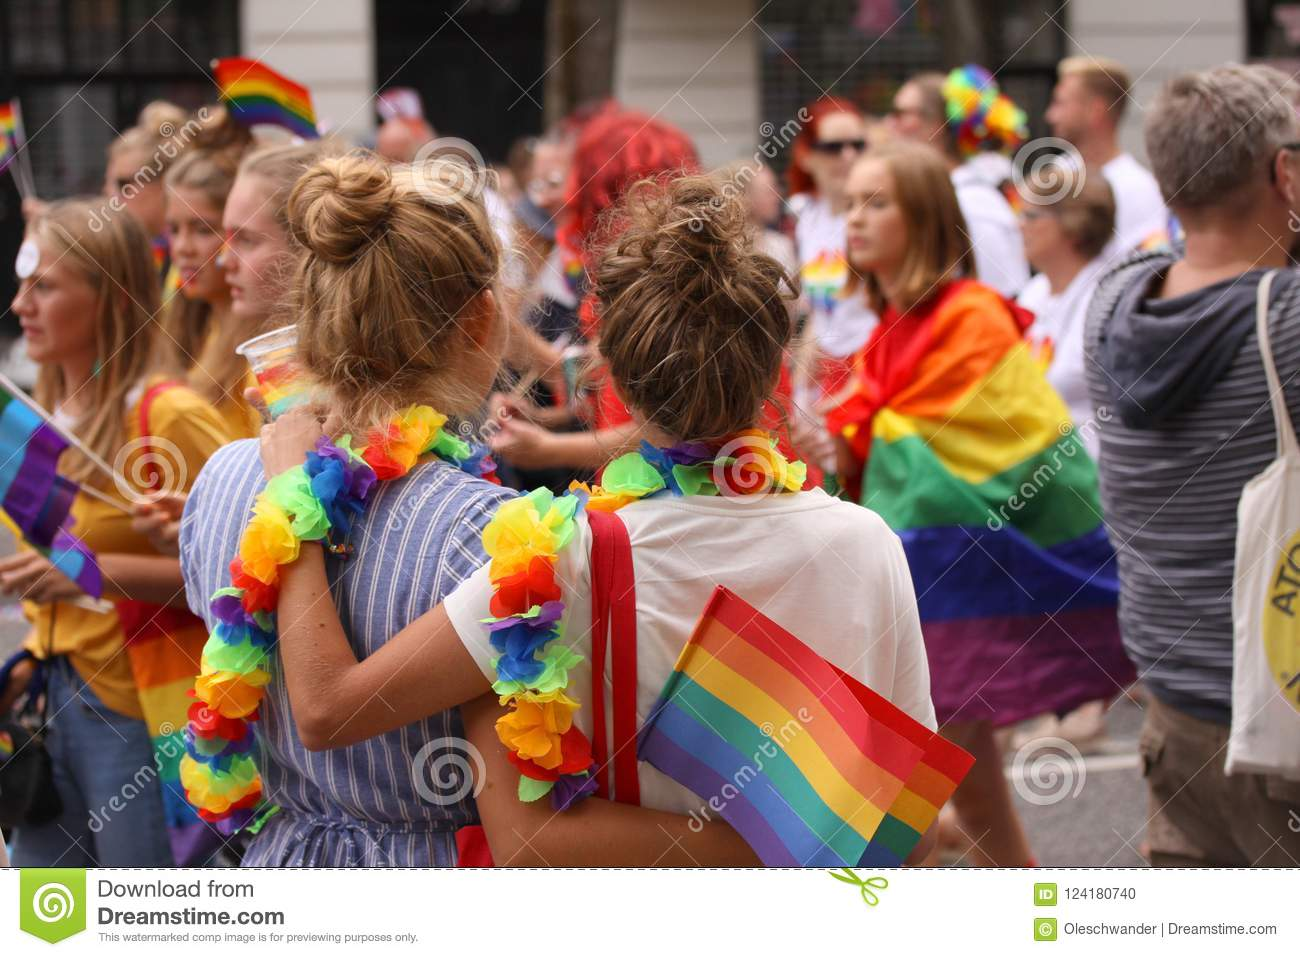 The annual Pride Parade LGBT. Impressions from gay and lesbians participating in the Gay Pride Parade with rainbow colors and flag